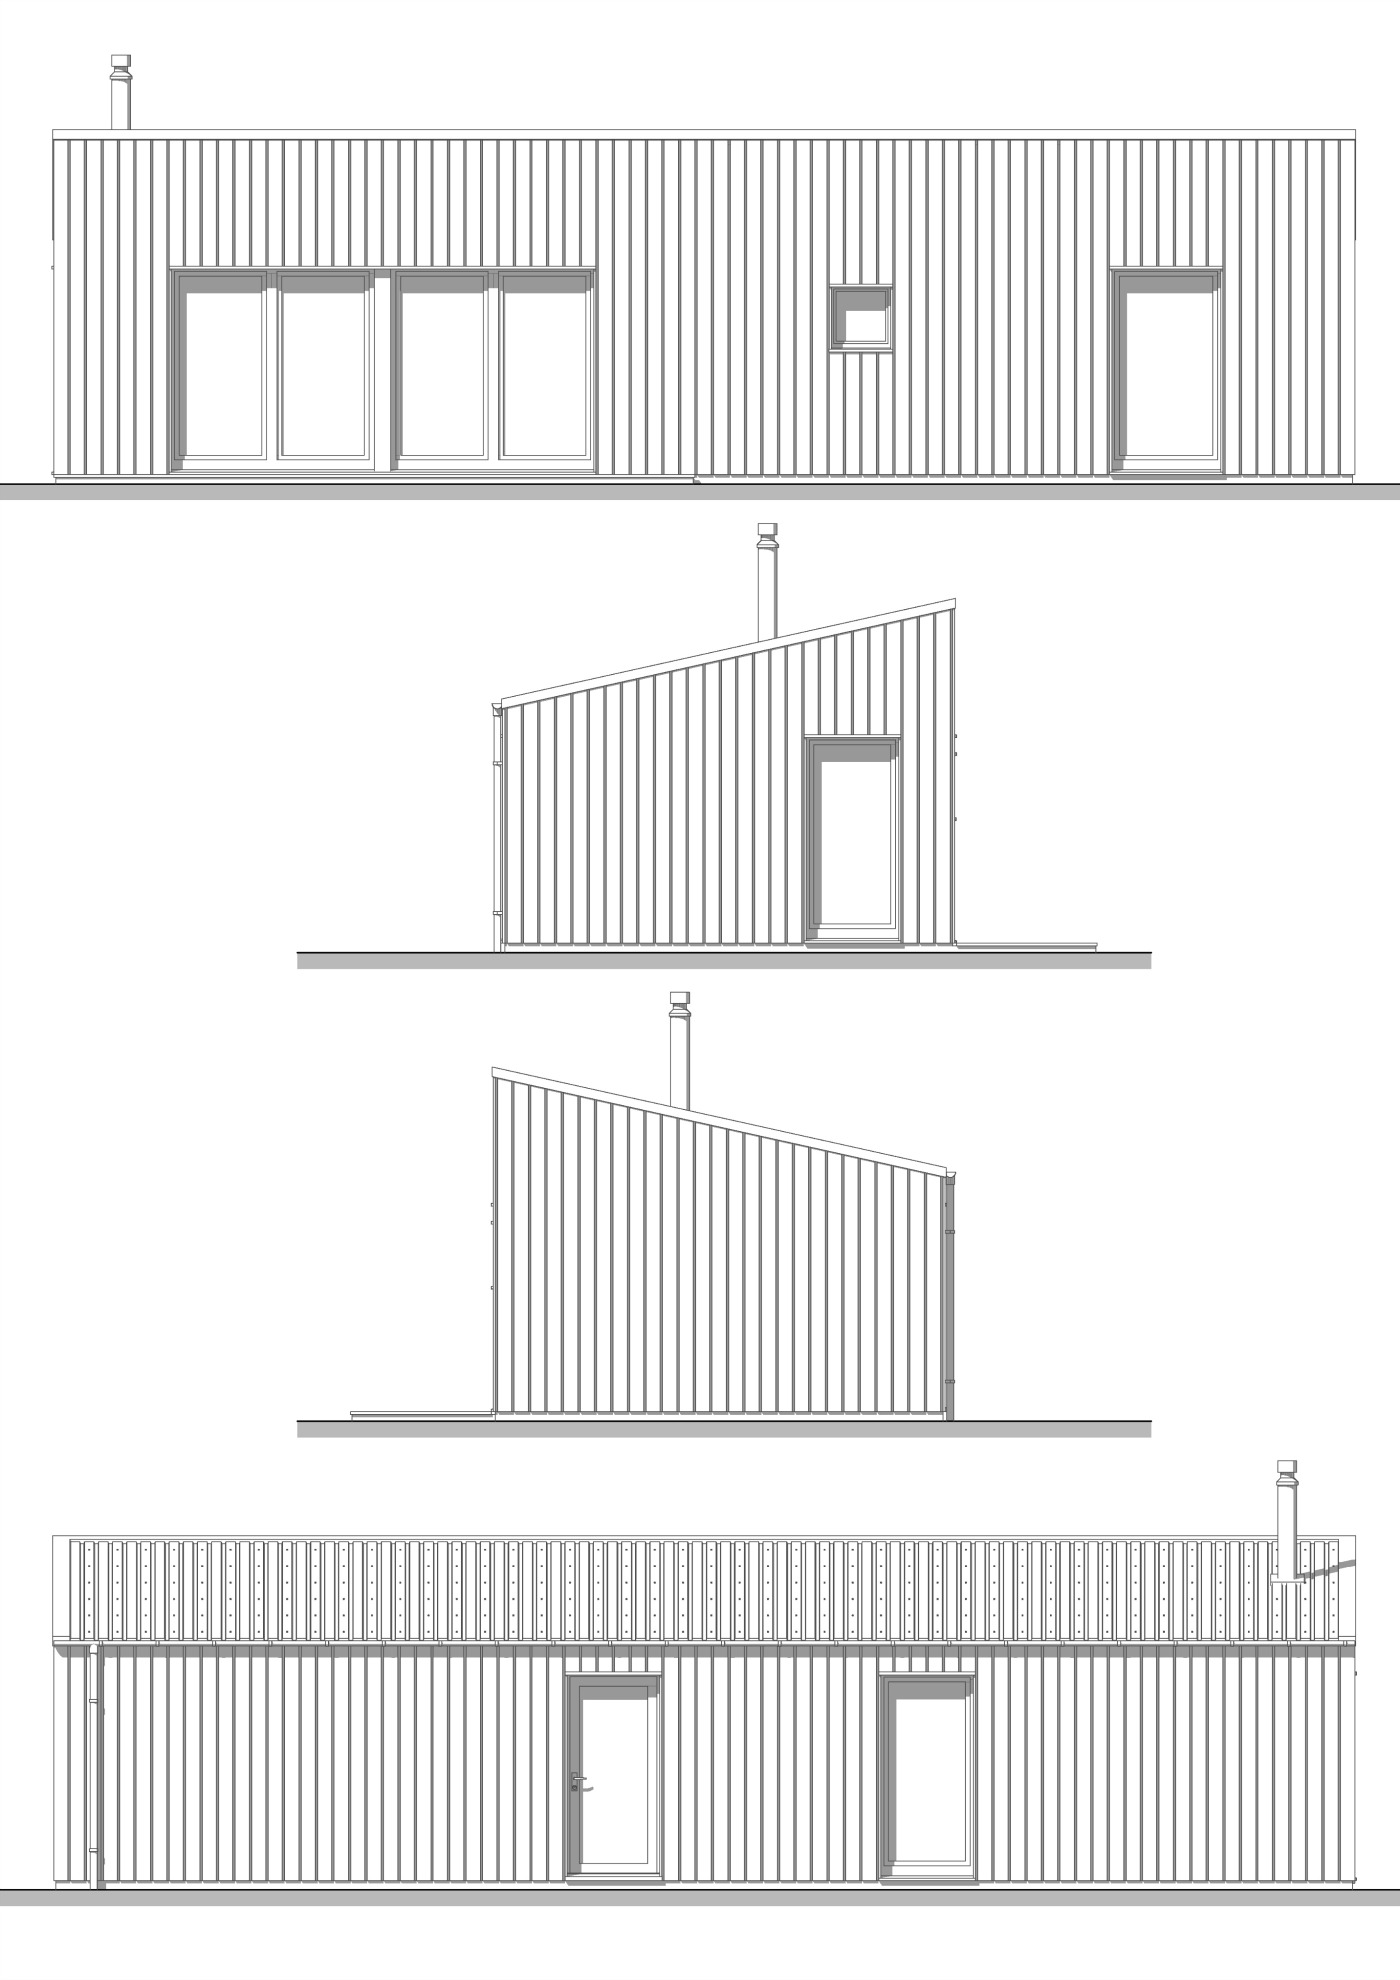 R.Bothy Mor Elevations